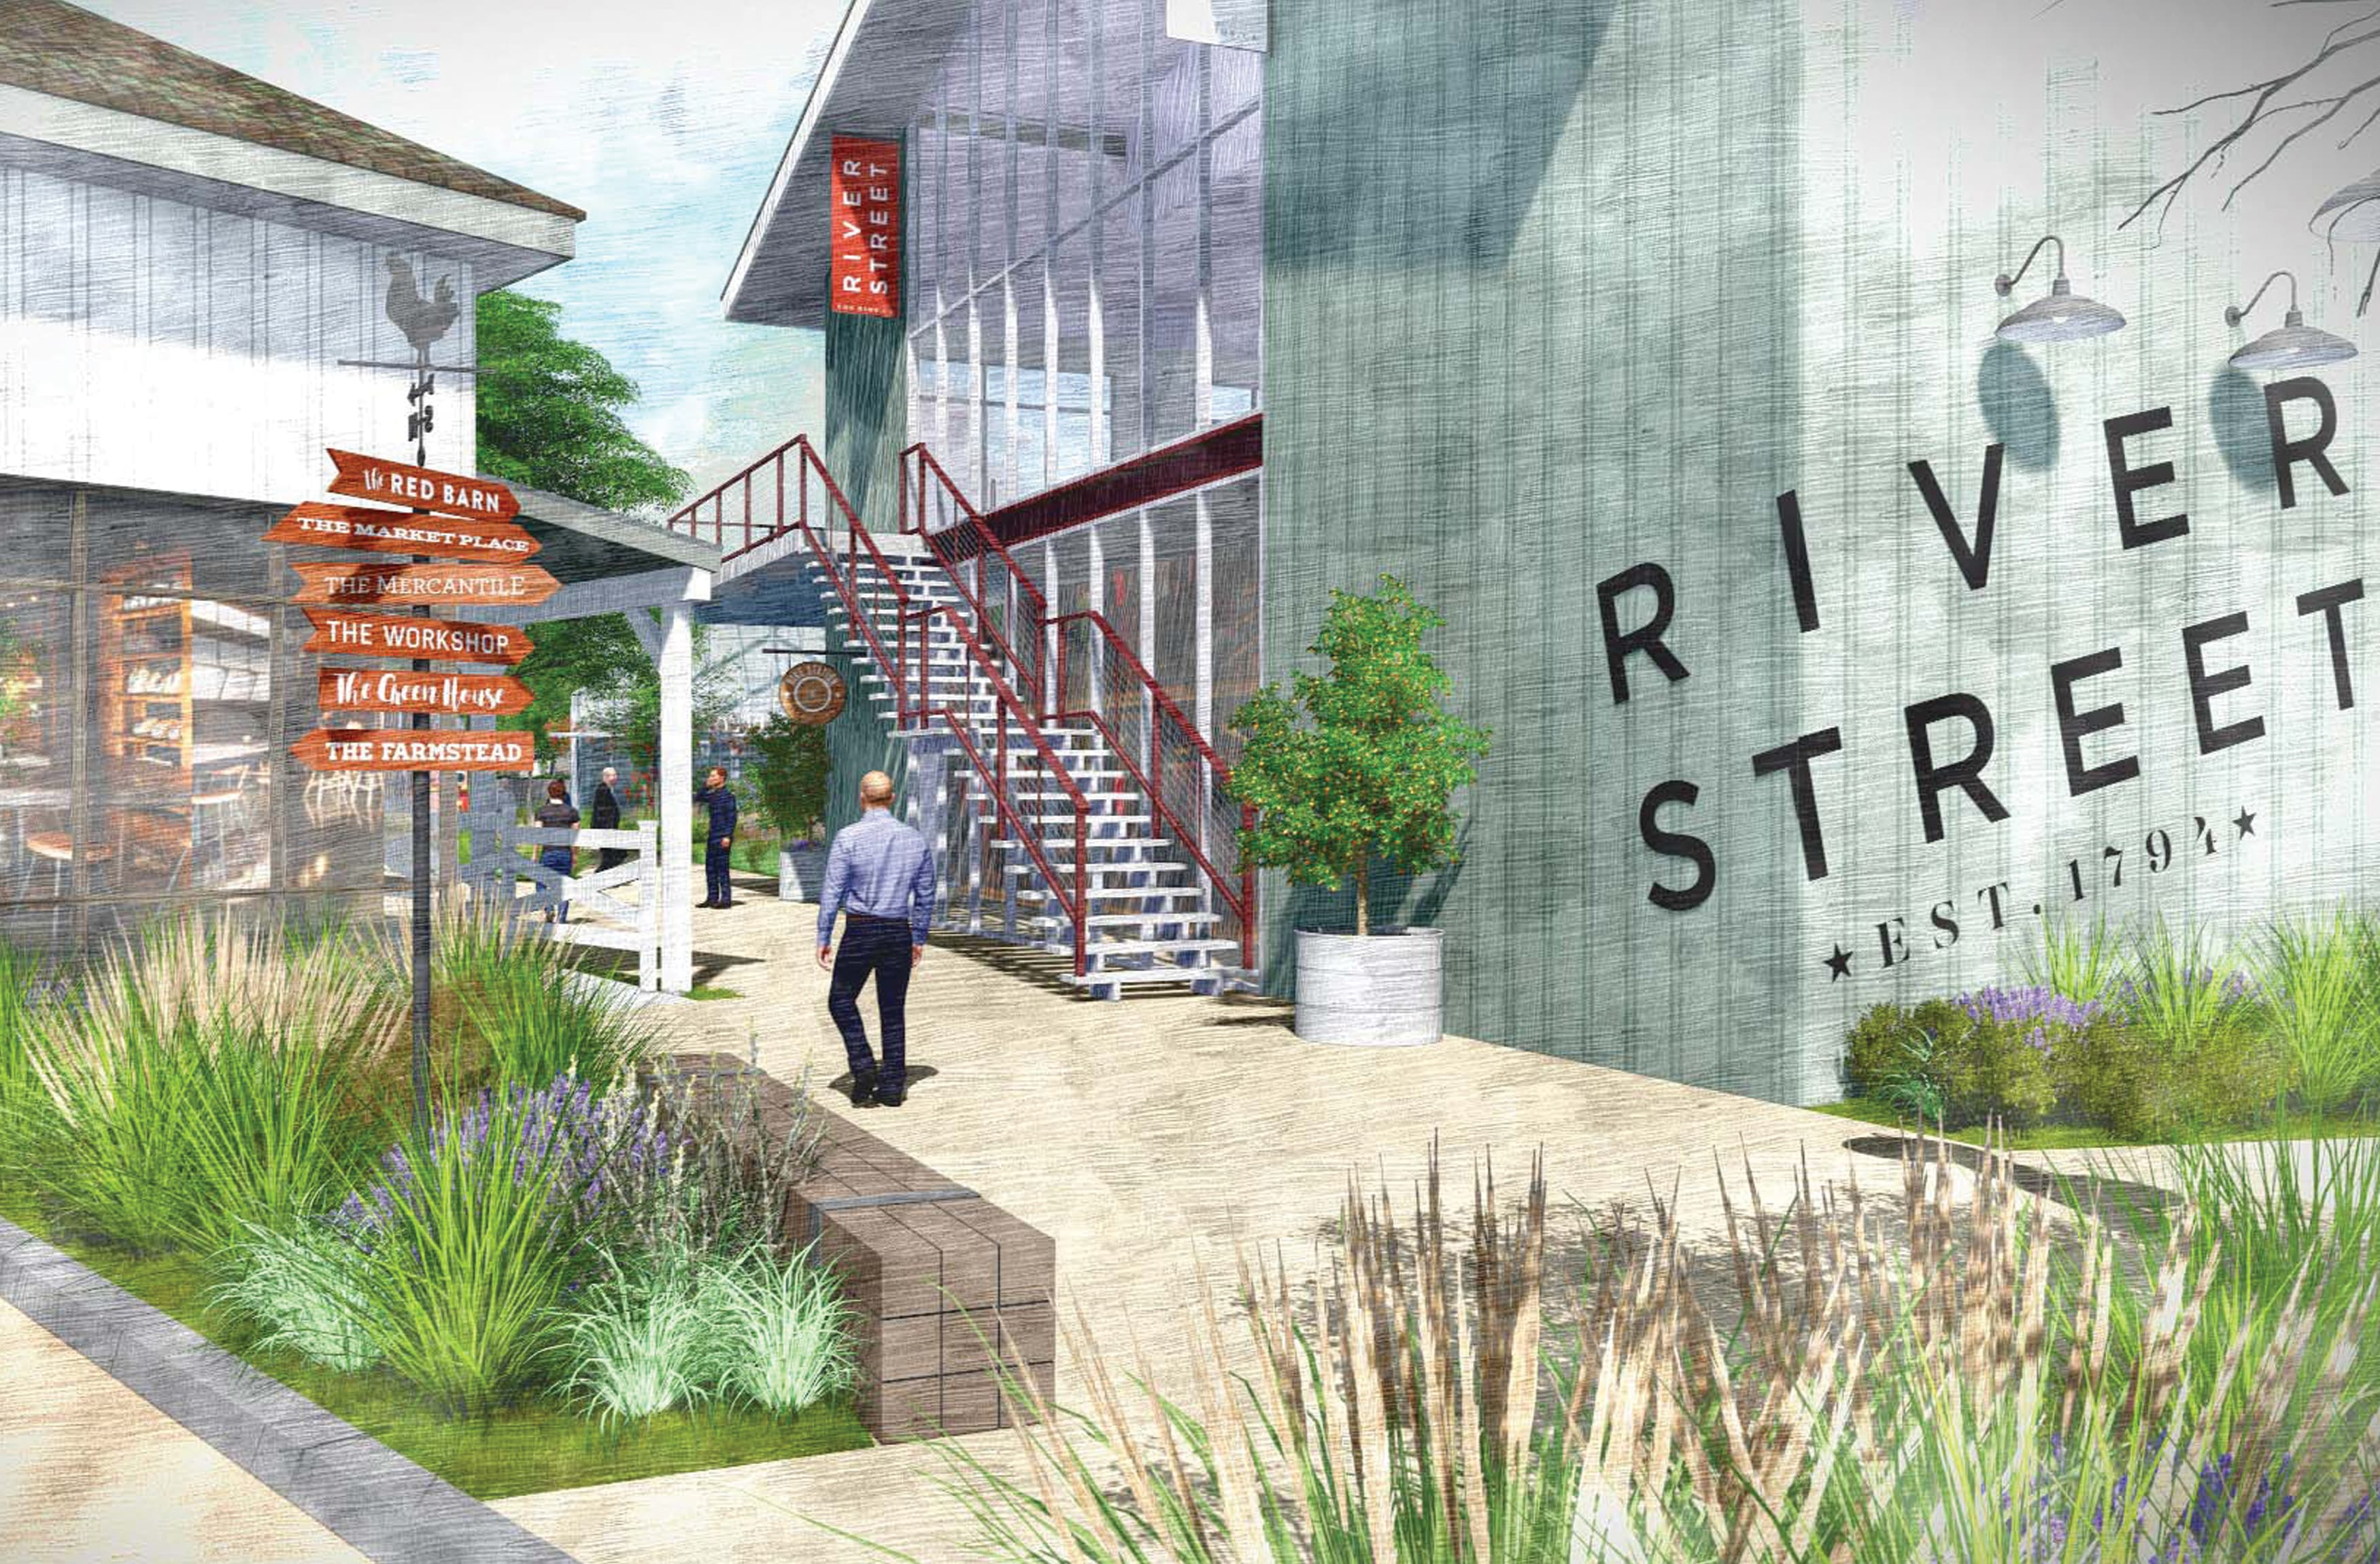 River Streeet, a mixed-use project in the historic and cultural center of San Juan Capistrano, California. RSM Design prepared wayfinding solutions and graphic architecture applications.